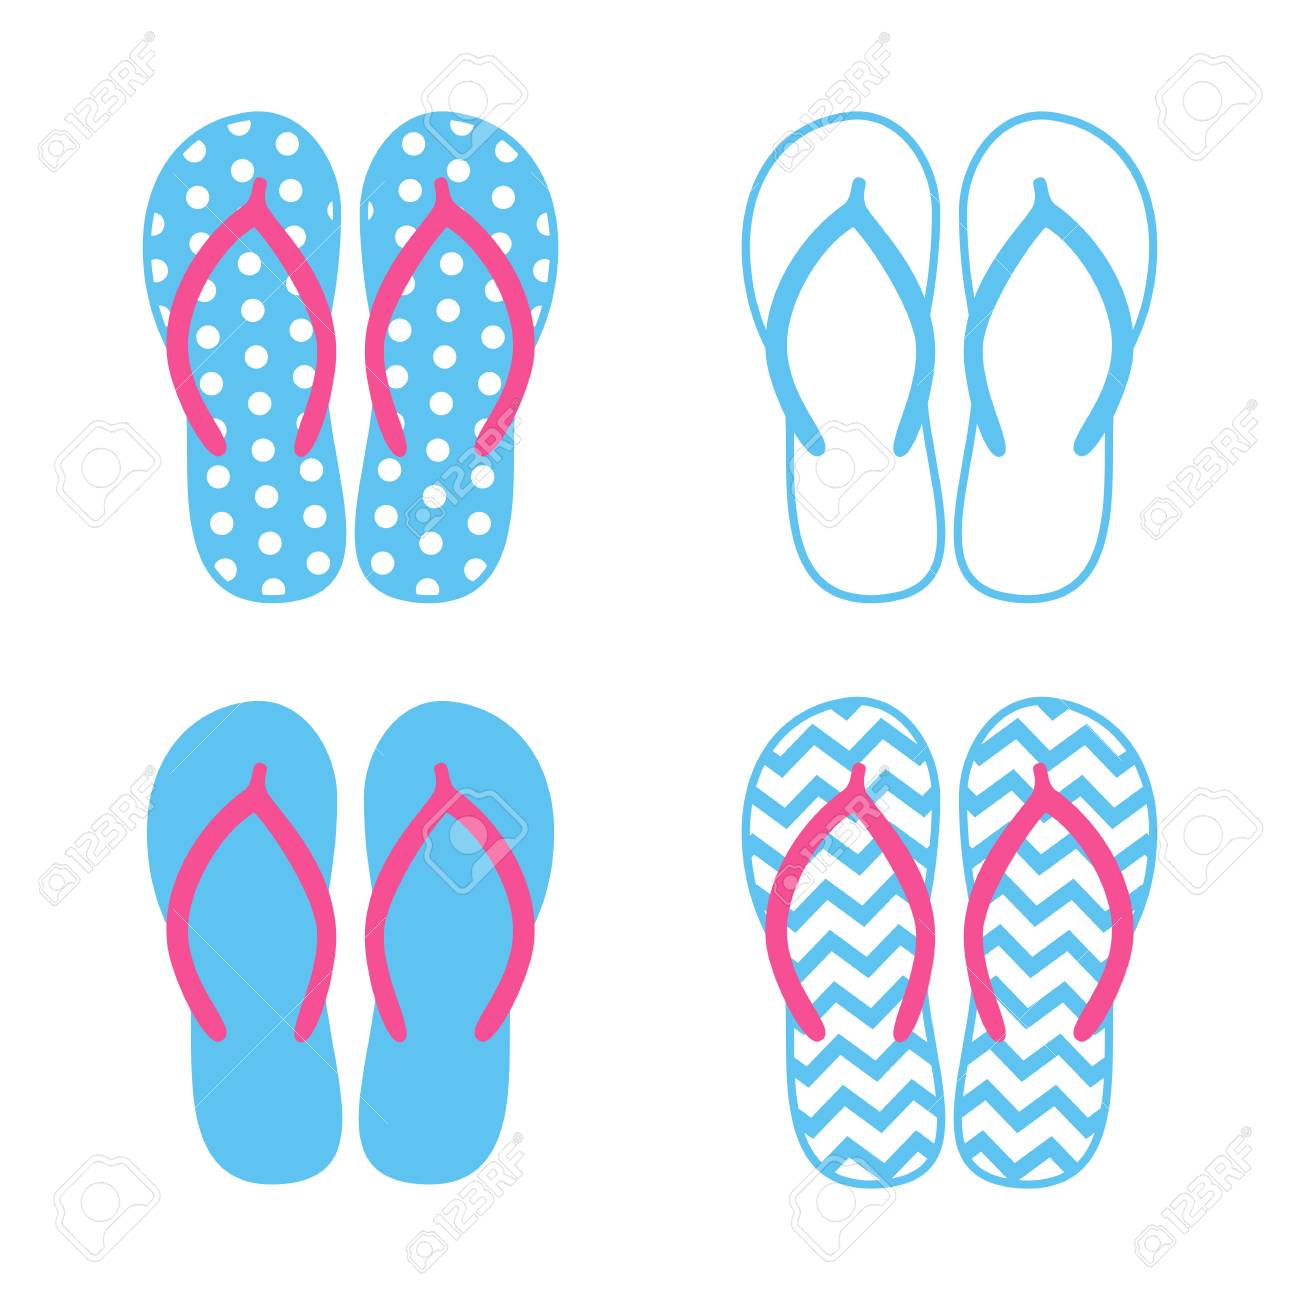 c6f2cc6afdb42d Colorful flip flops. Beach slippers. Sandals. Vector icon isolated on white  background.